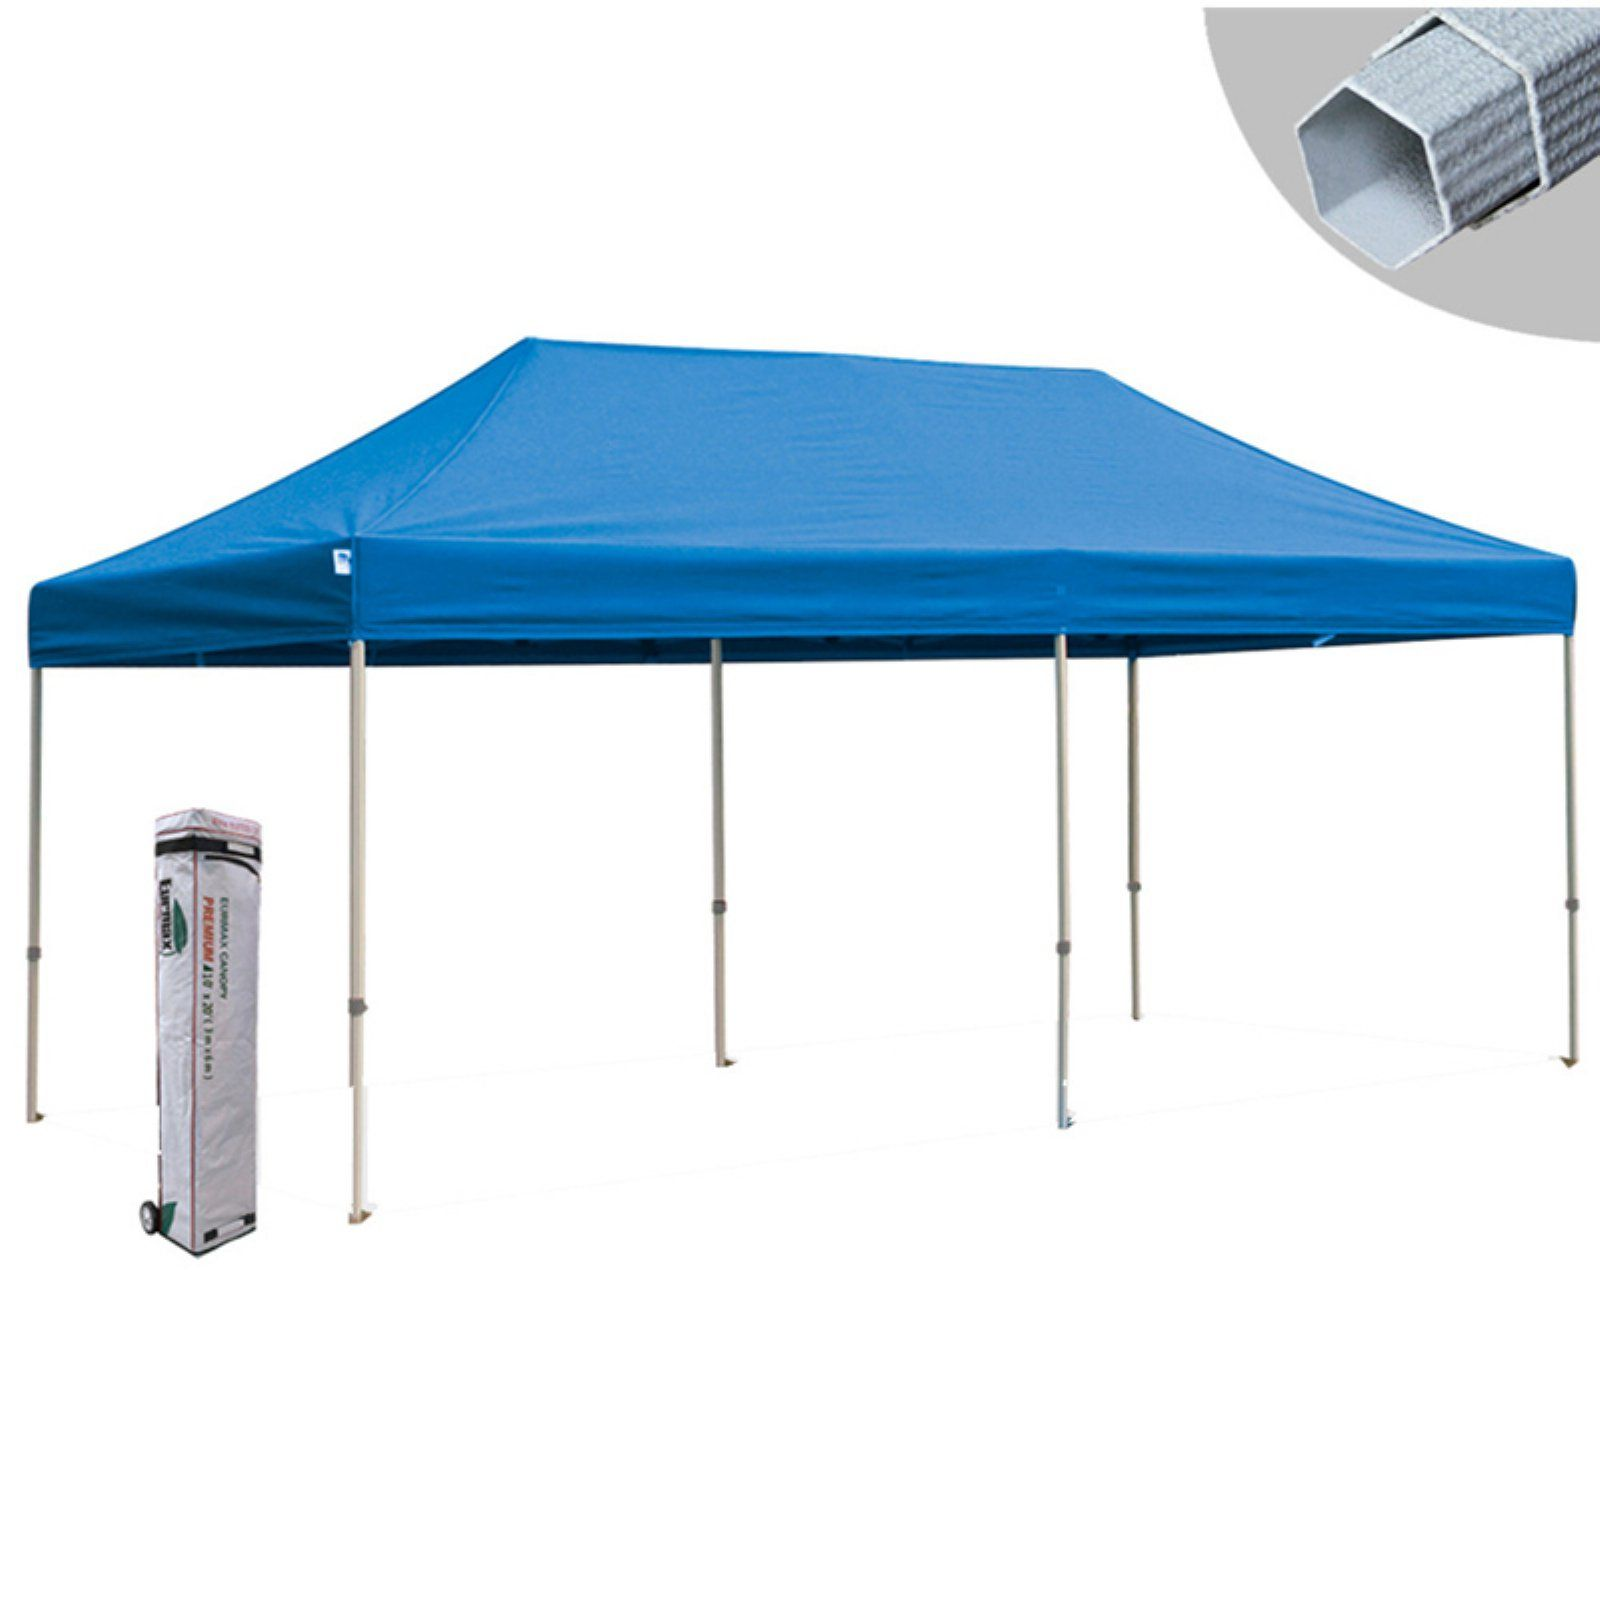 Eurmax Canopy Inc Premium 10 X 20 Ft Pop Up Canopy Royal Blue Party Tent Canopy